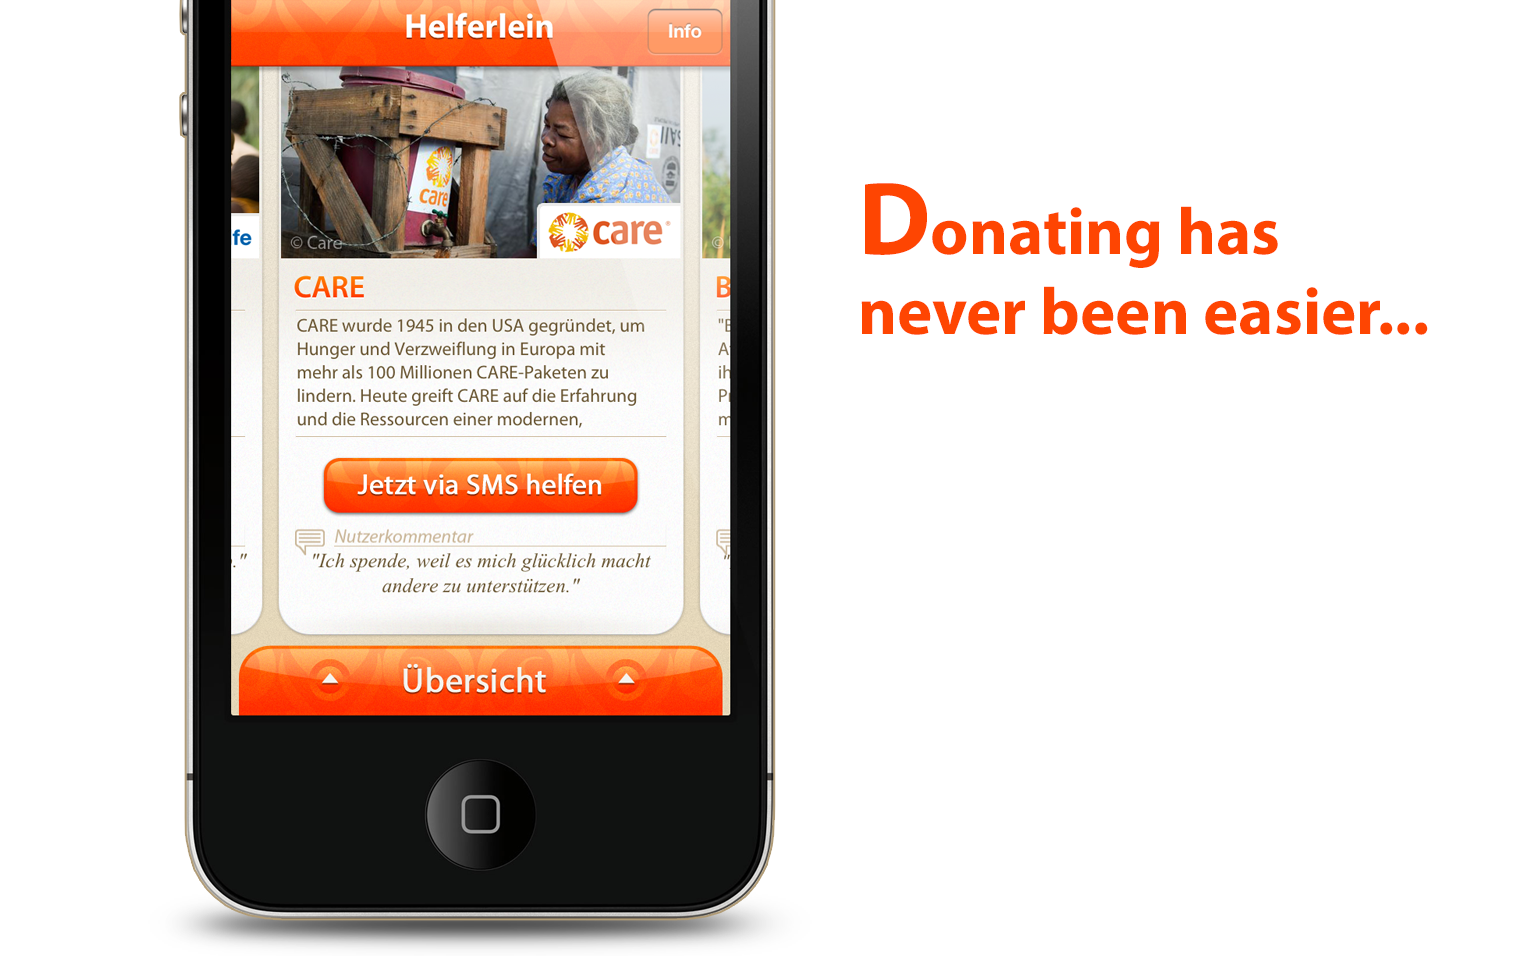 Helferlein charity iPhone app - slide 1